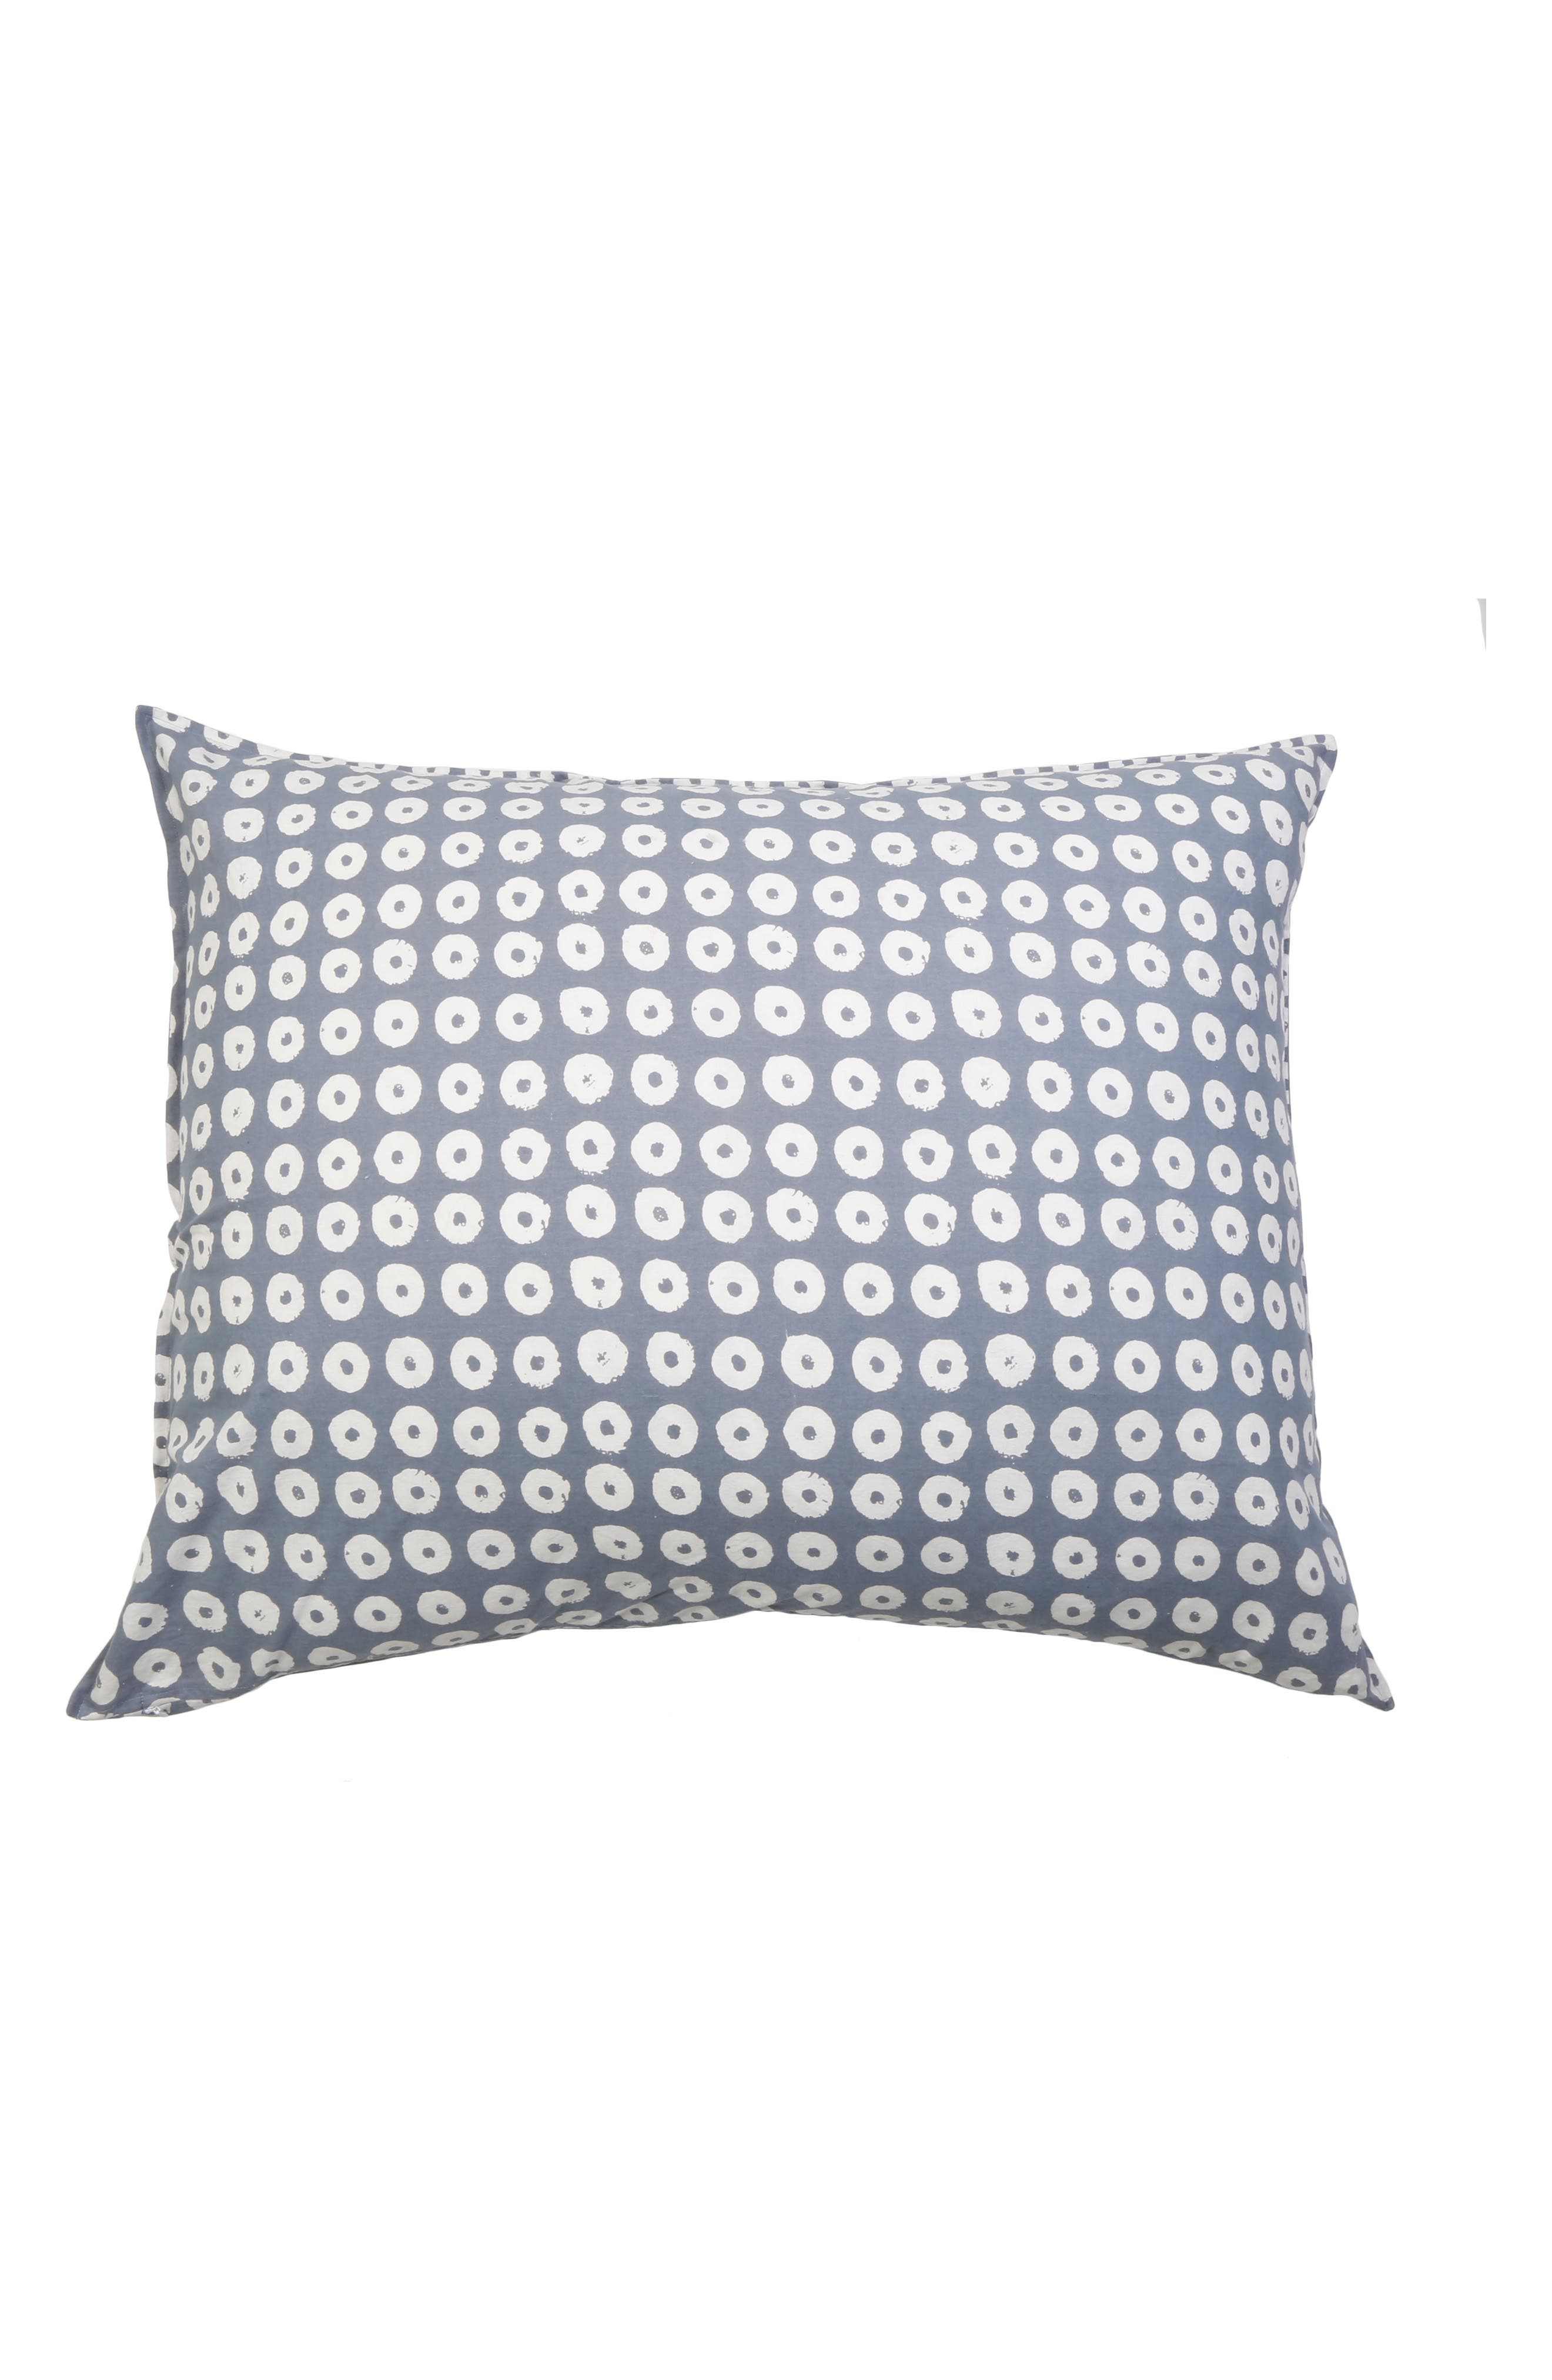 Tootsie Accent Pillow,                             Main thumbnail 1, color,                             400